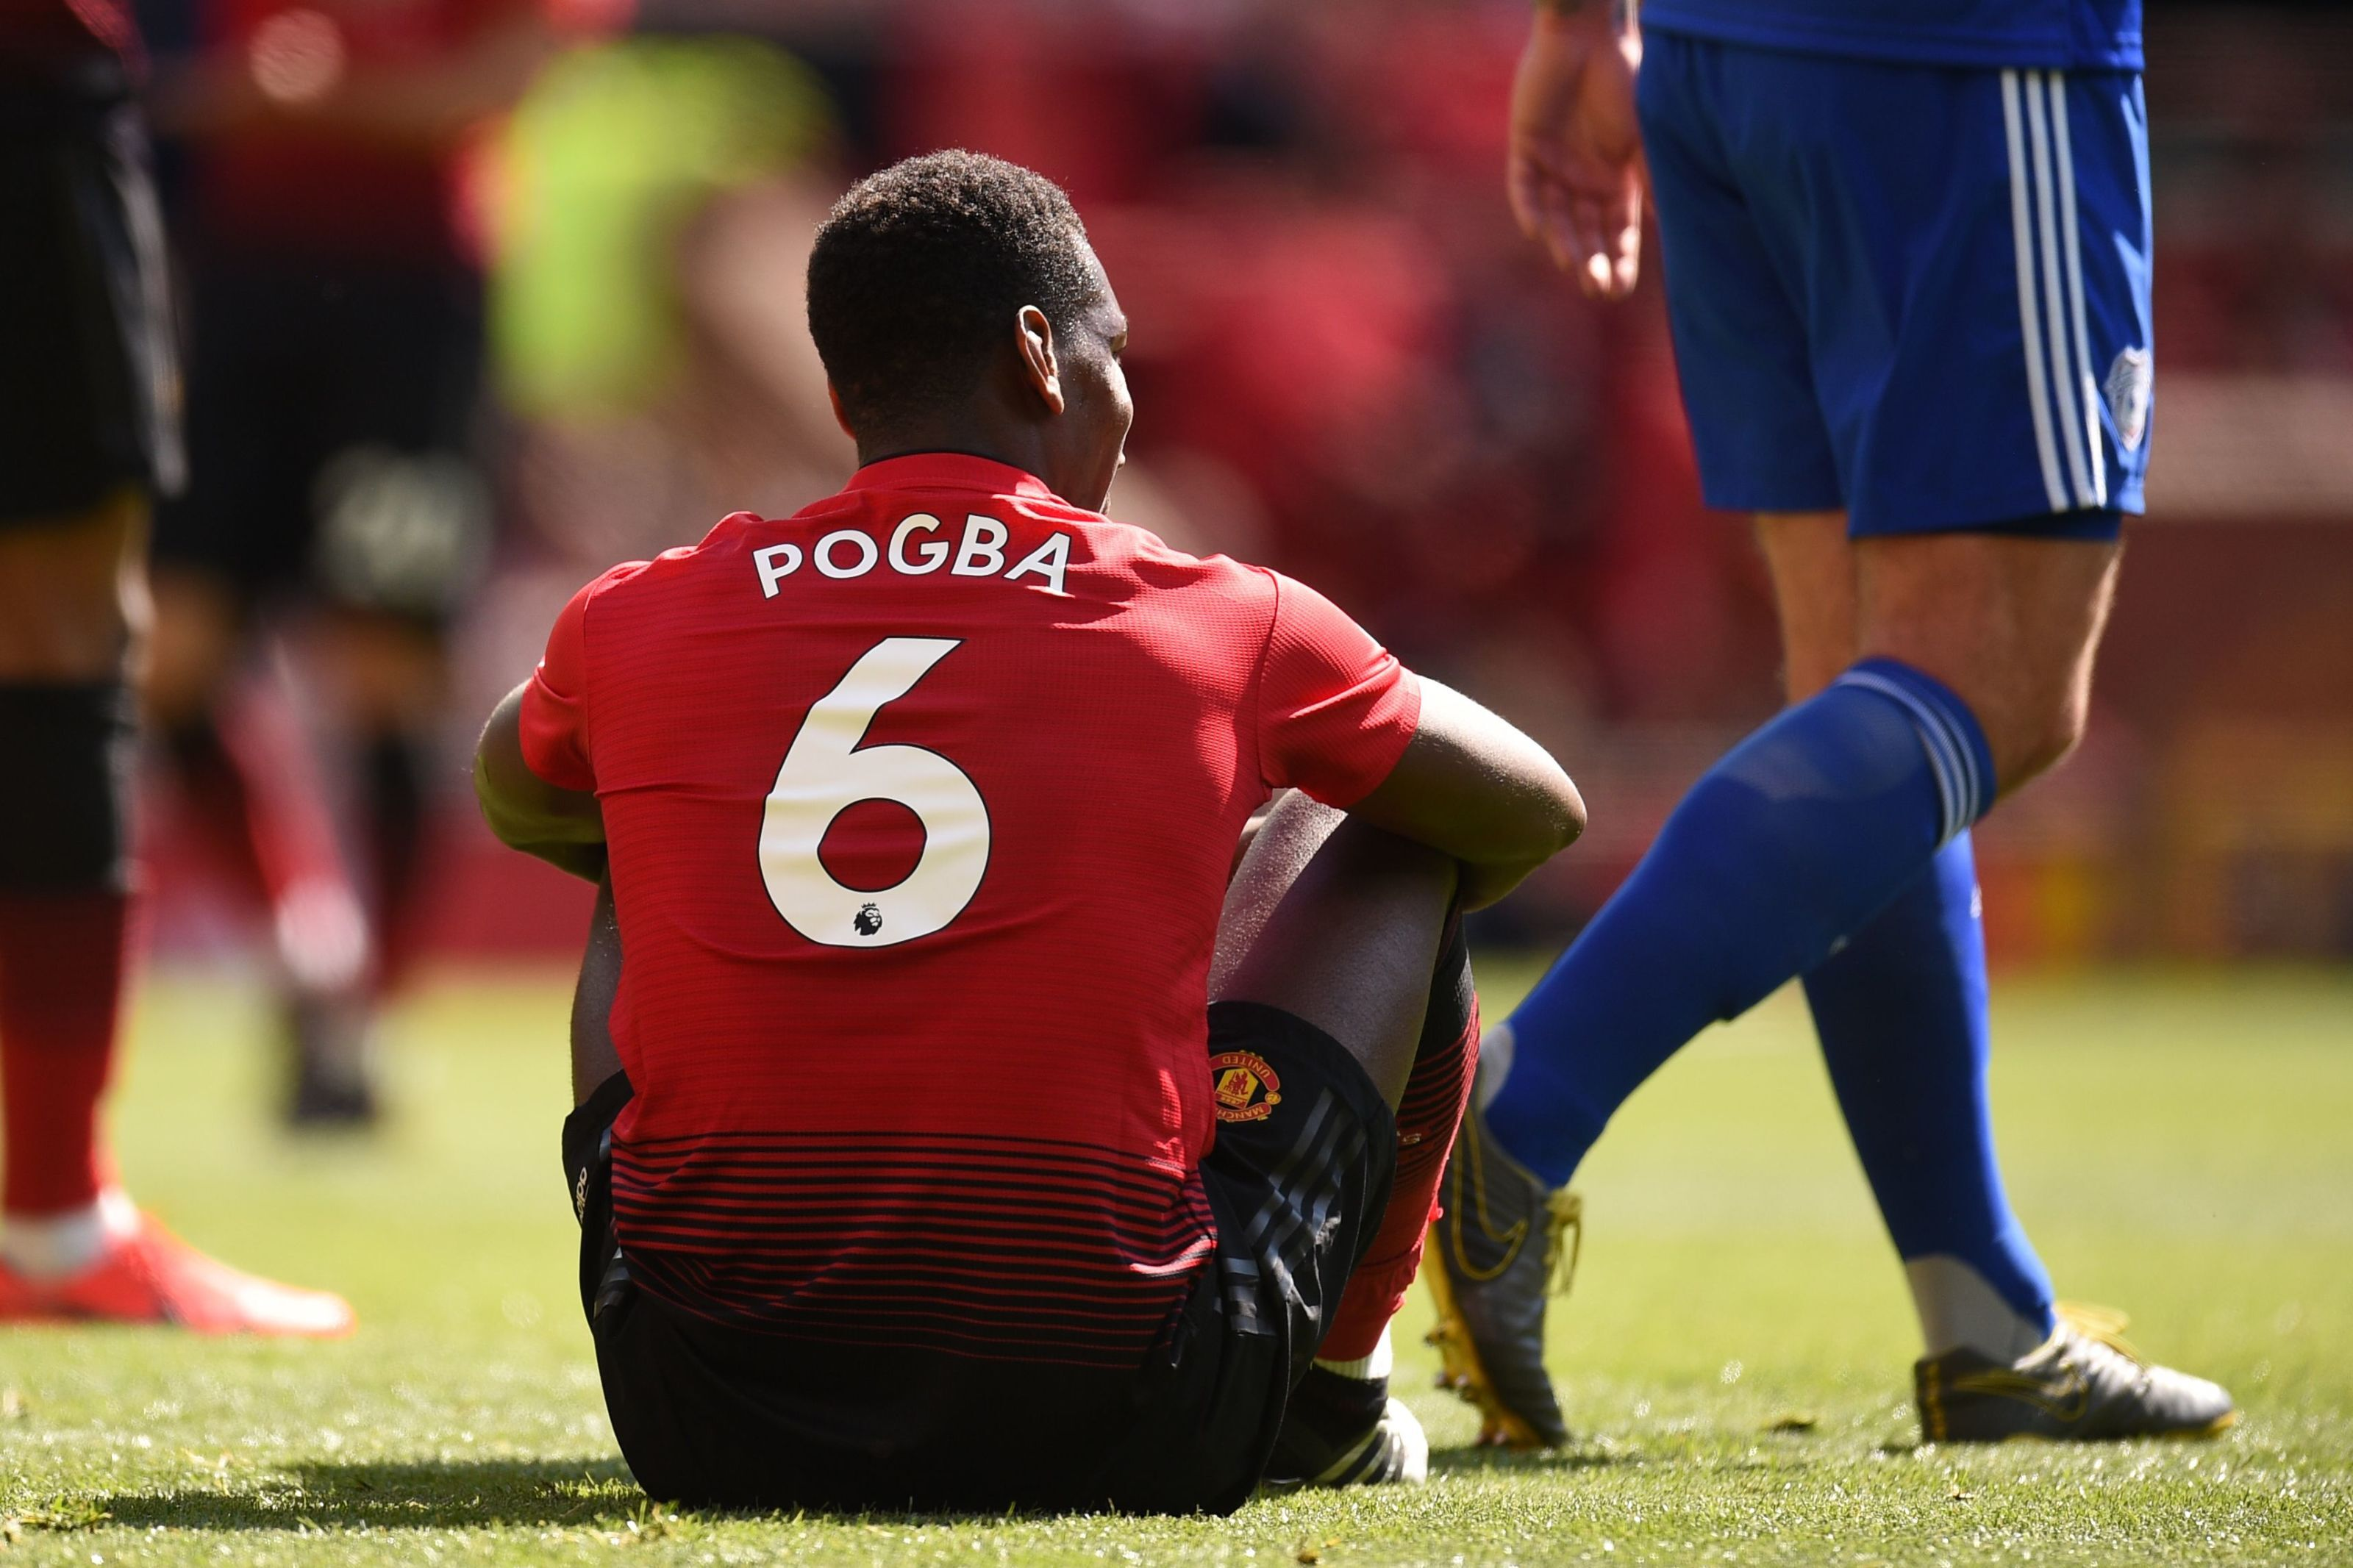 Manchester United increase their valuation of Paul Poba